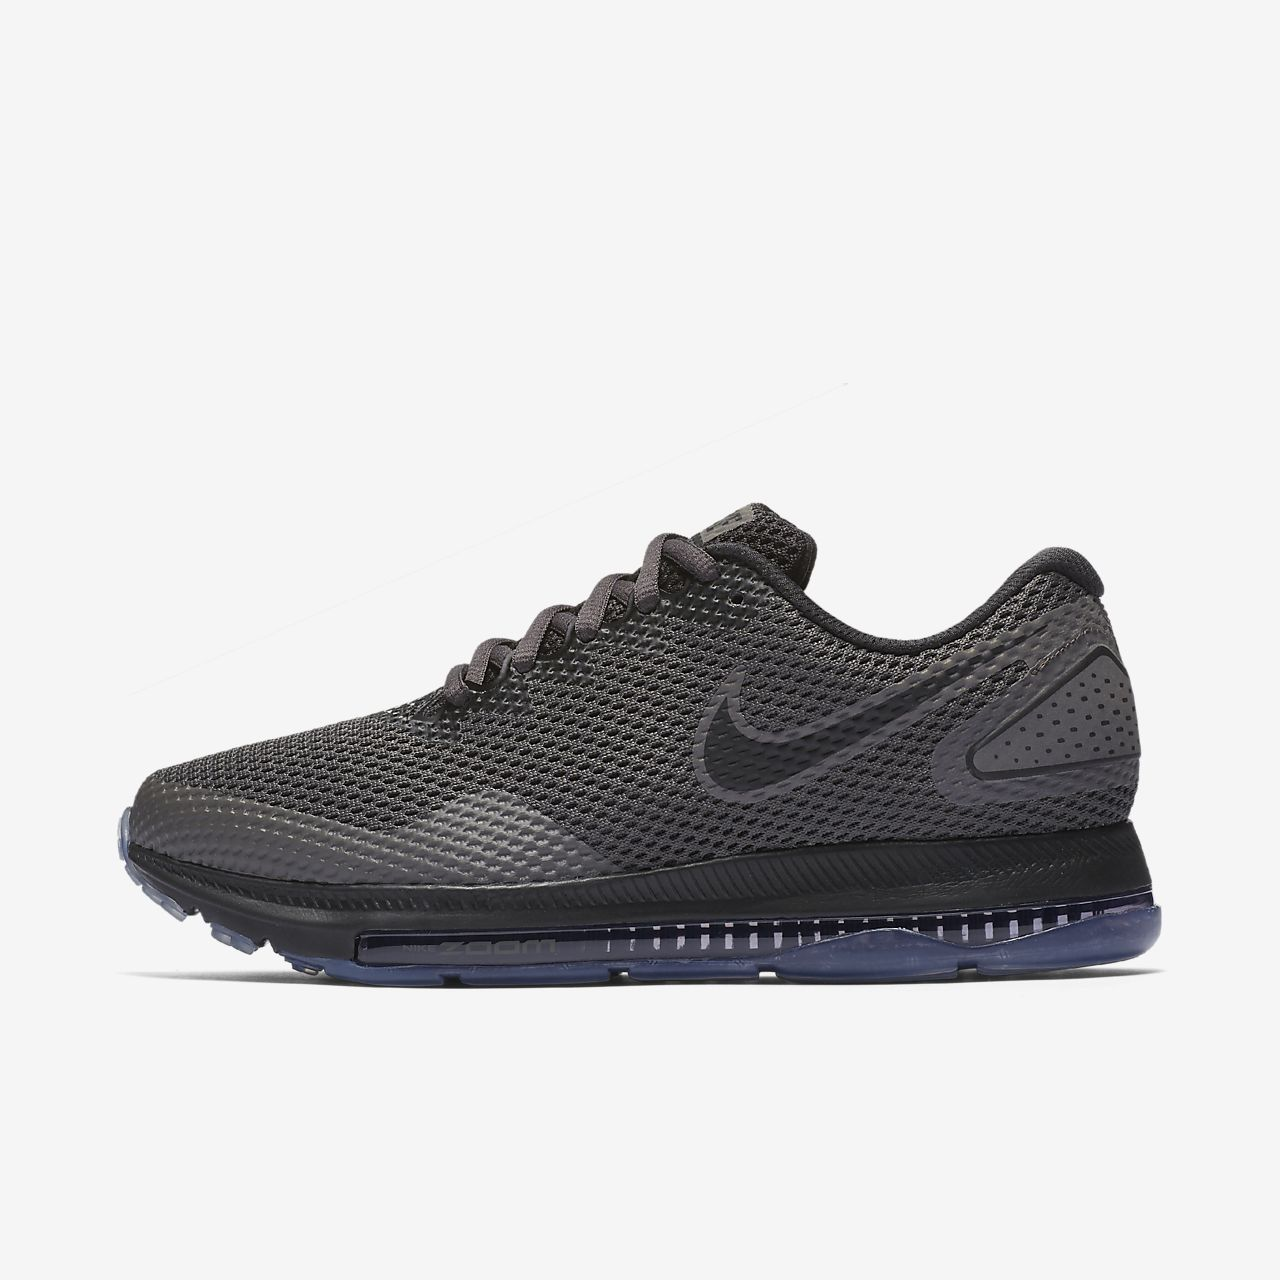 3998f2b15 Calzado de running para mujer Nike Zoom All Out Low 2. Nike.com CL